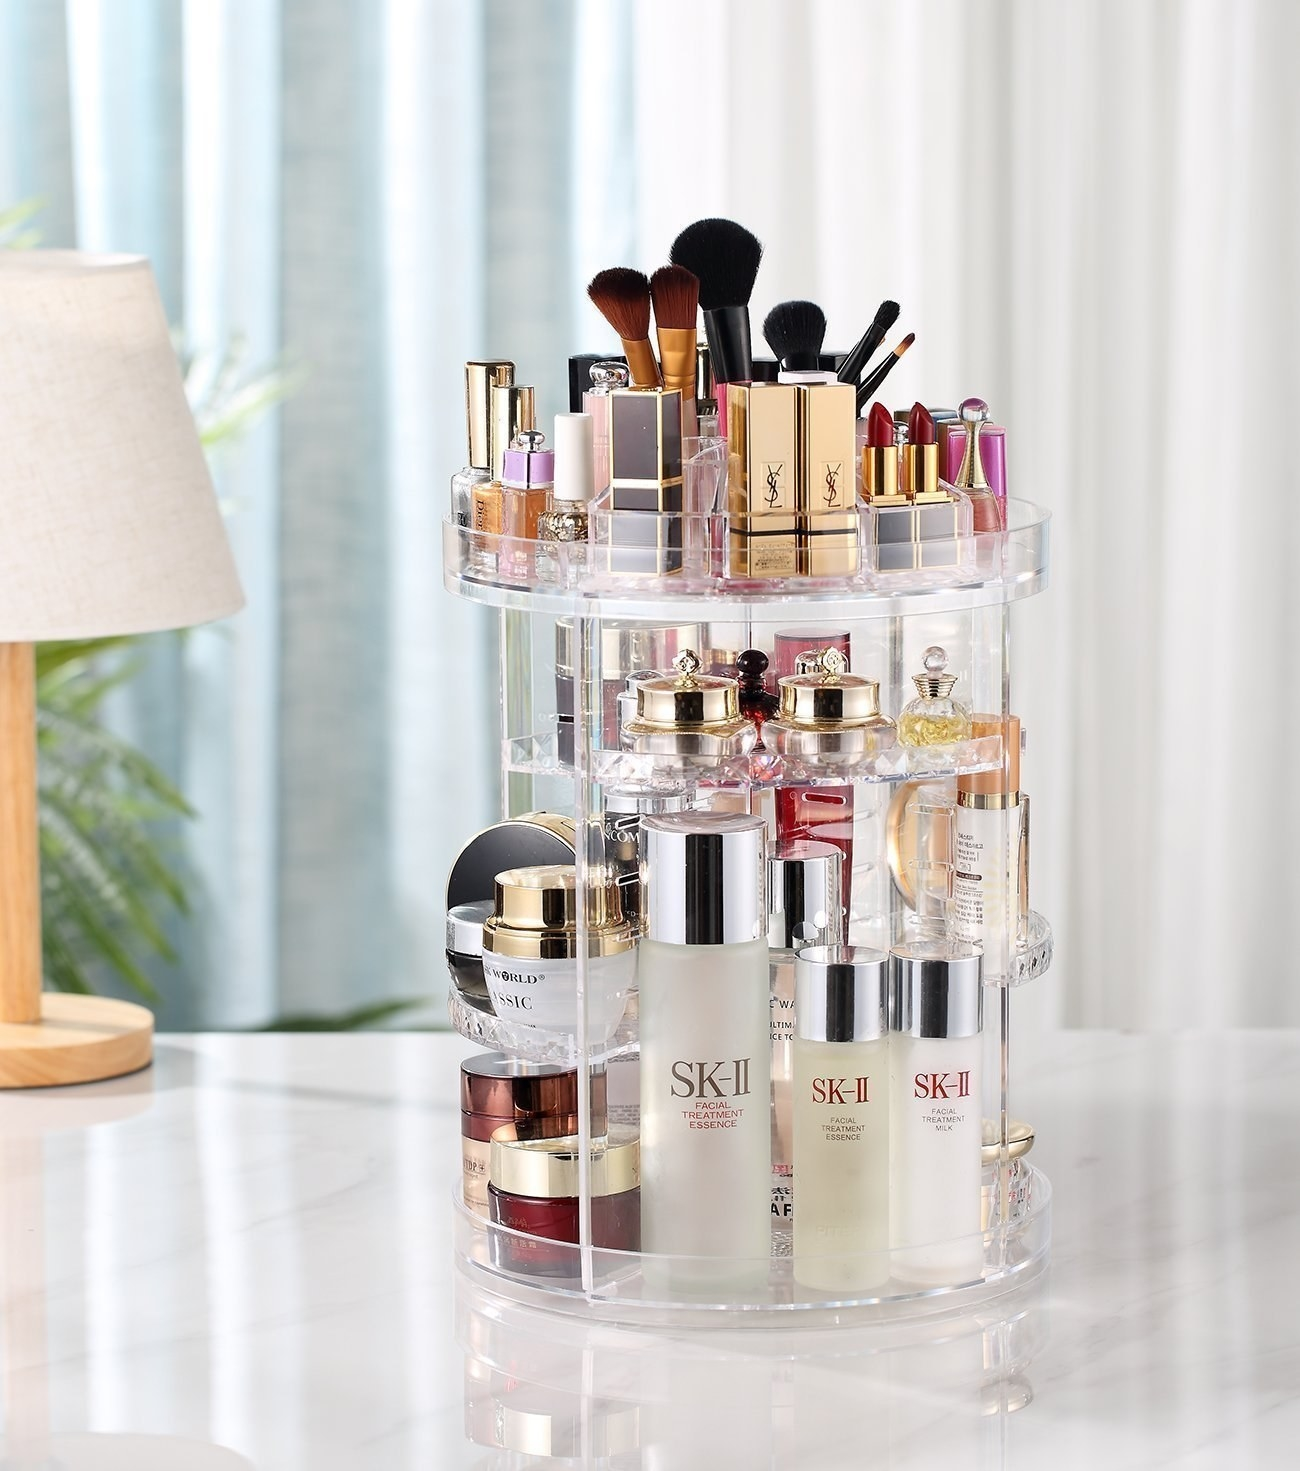 tall cylinder shape organier with makeup and skin products shelved on it